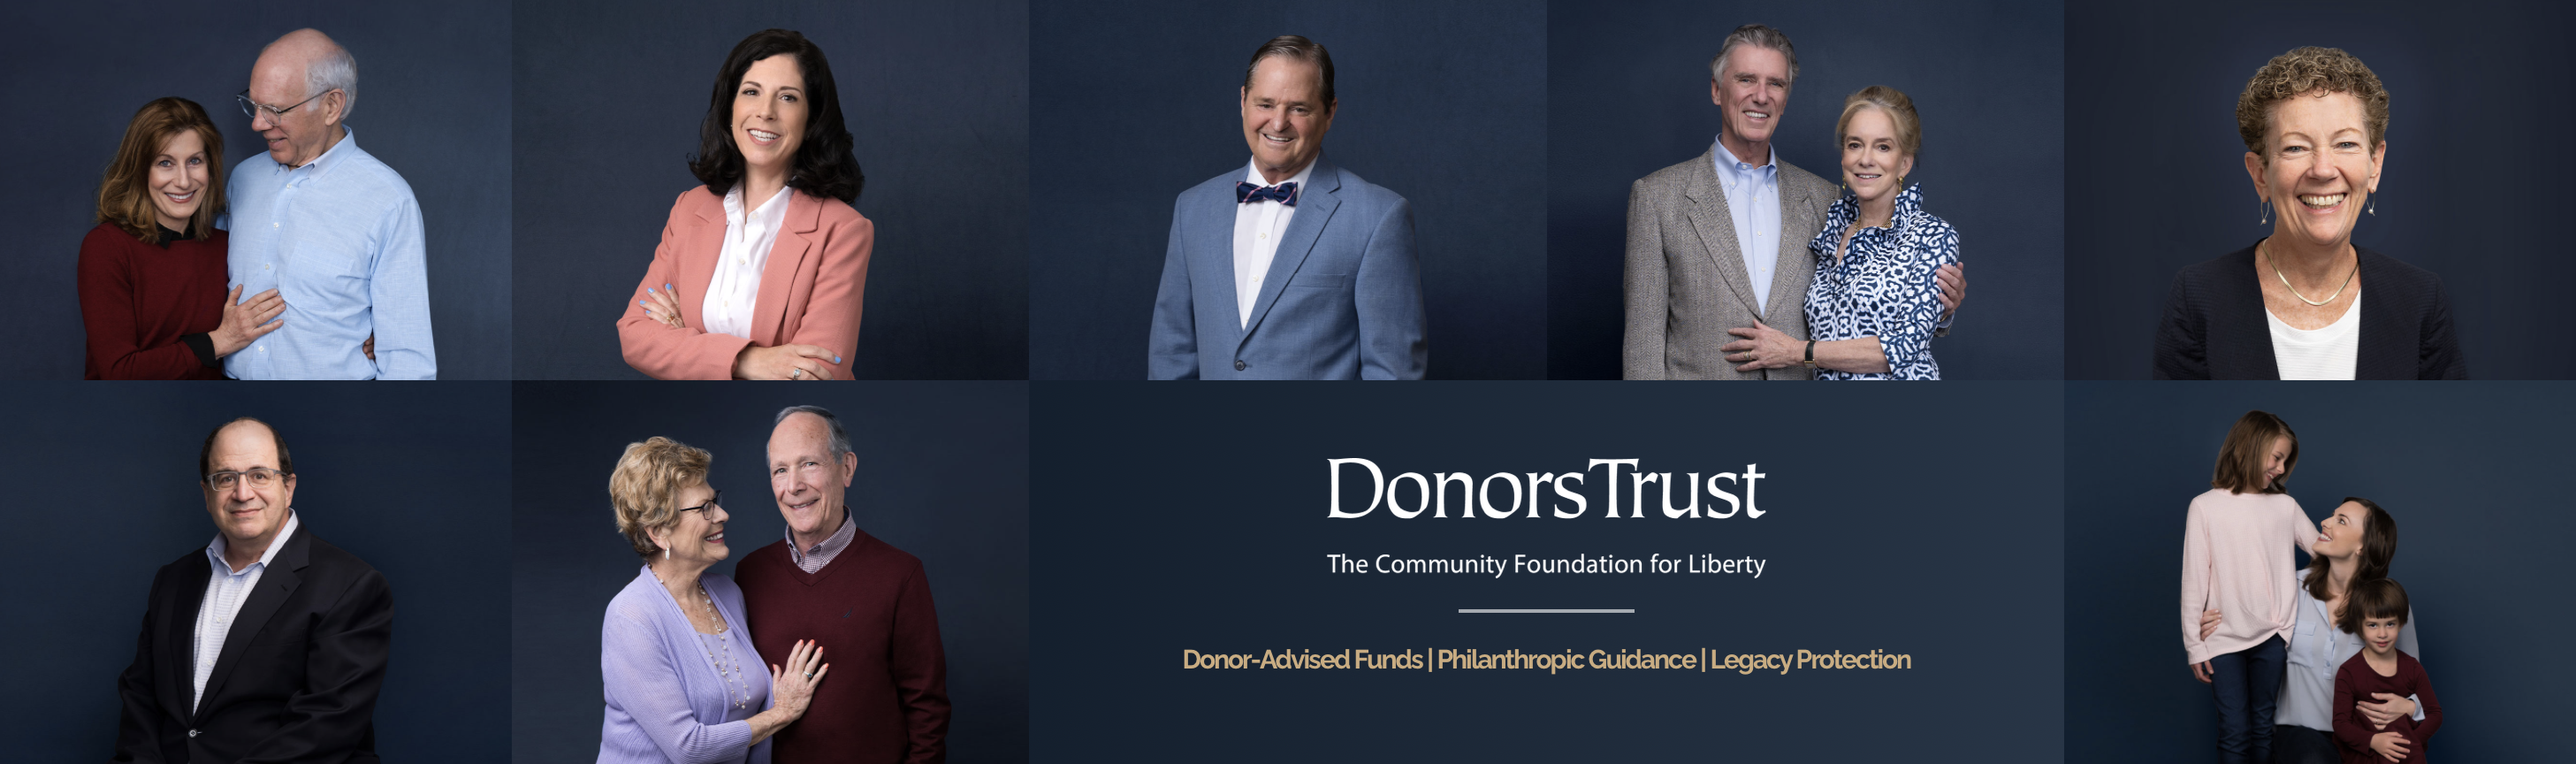 Why Give with DonorsTrust?